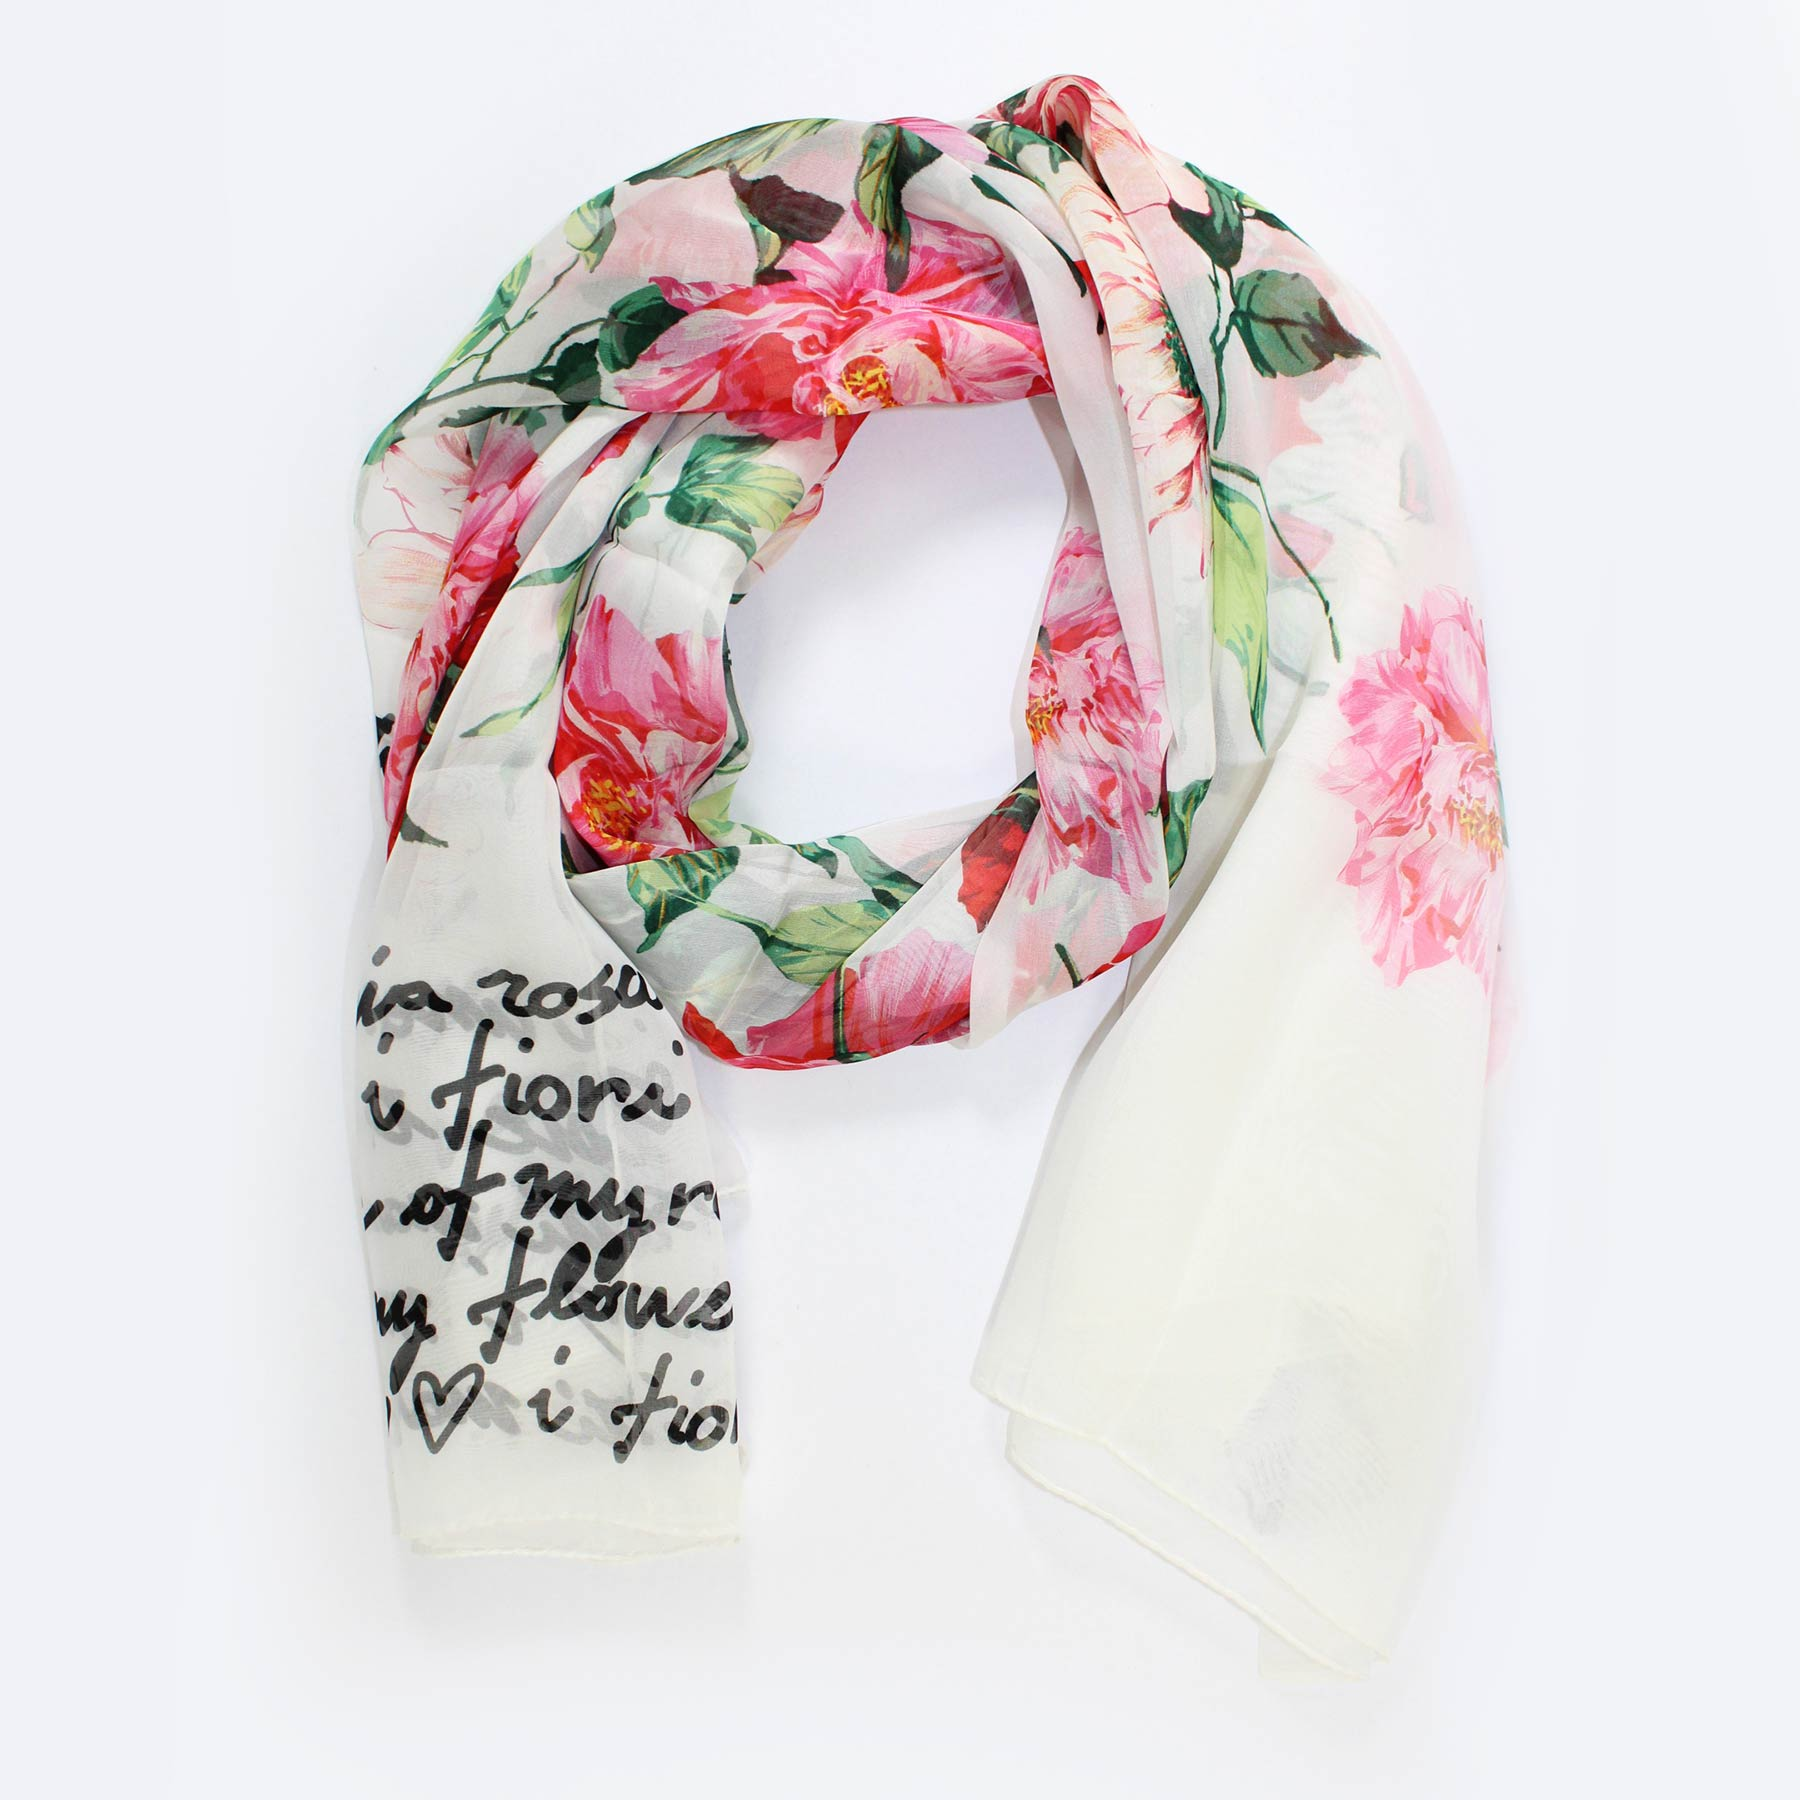 Dolce & Gabbana Scarf White Pink Red Roses Floral - Extra Large Chiffon Silk Shawl